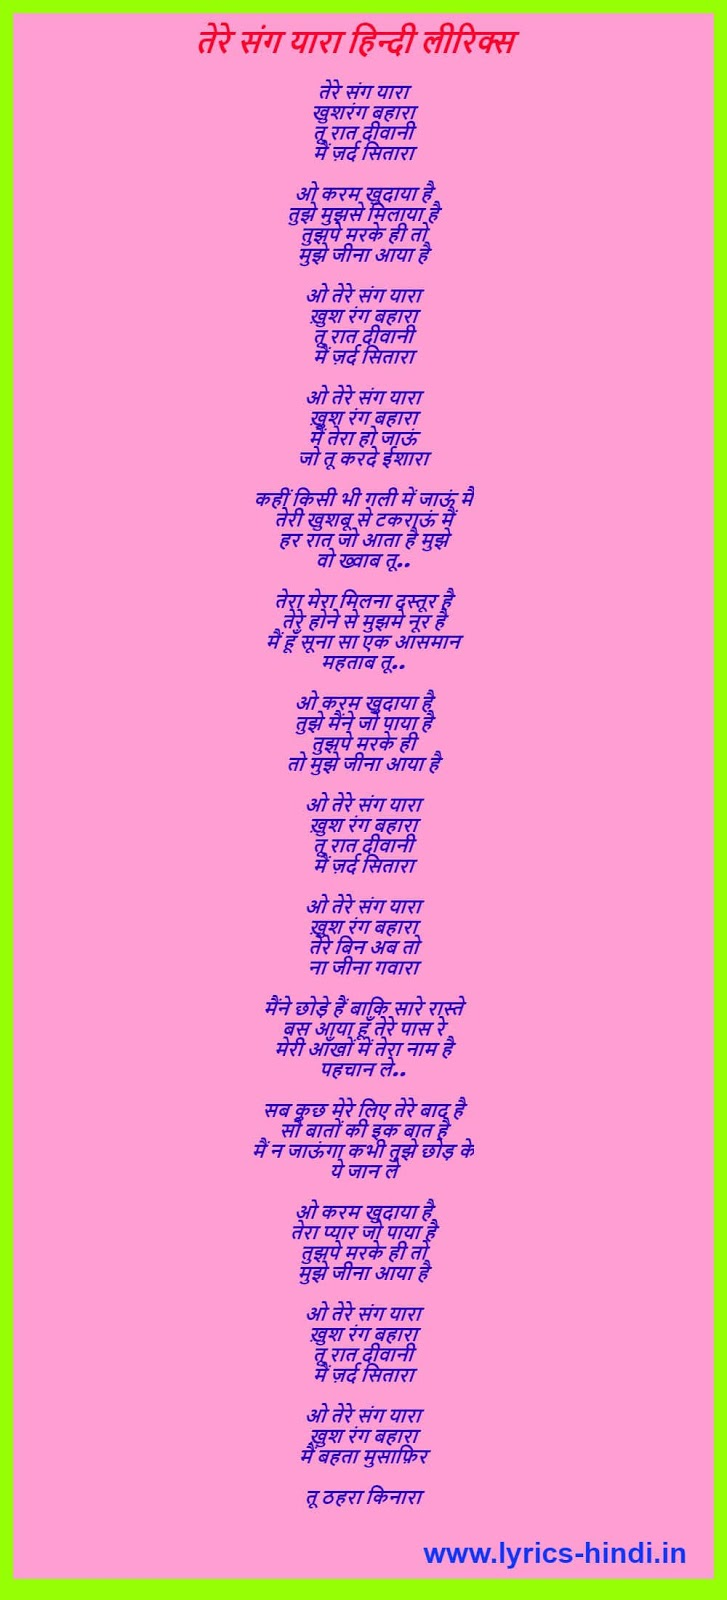 tere-sang-yaara-lyrics-in-hindi